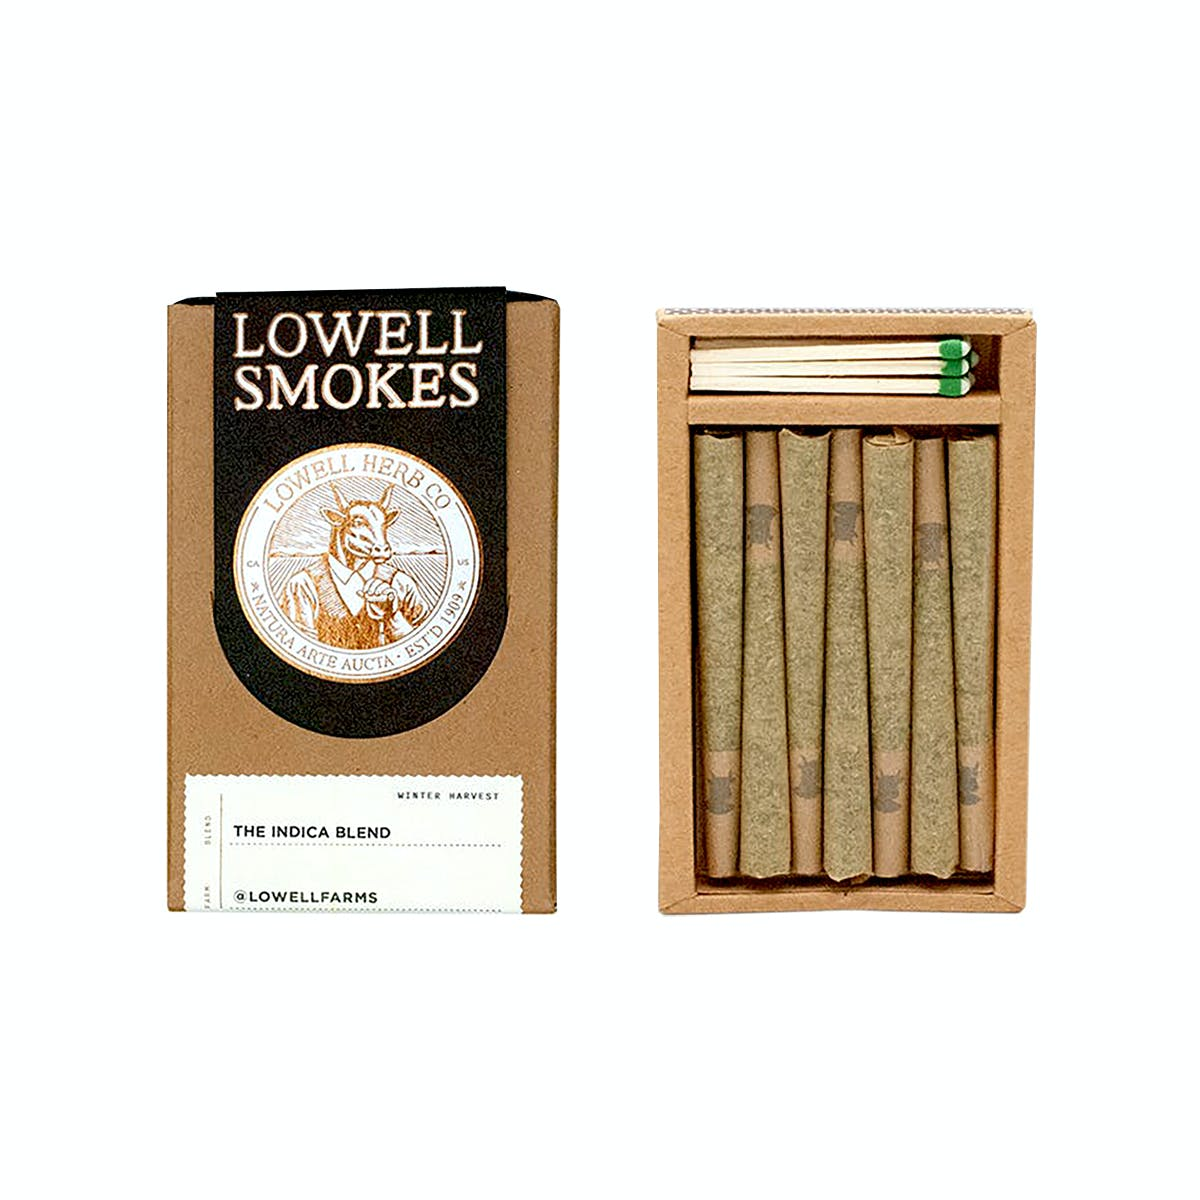 Lowell Smokes - The Indica Blend - 3.5g Pack